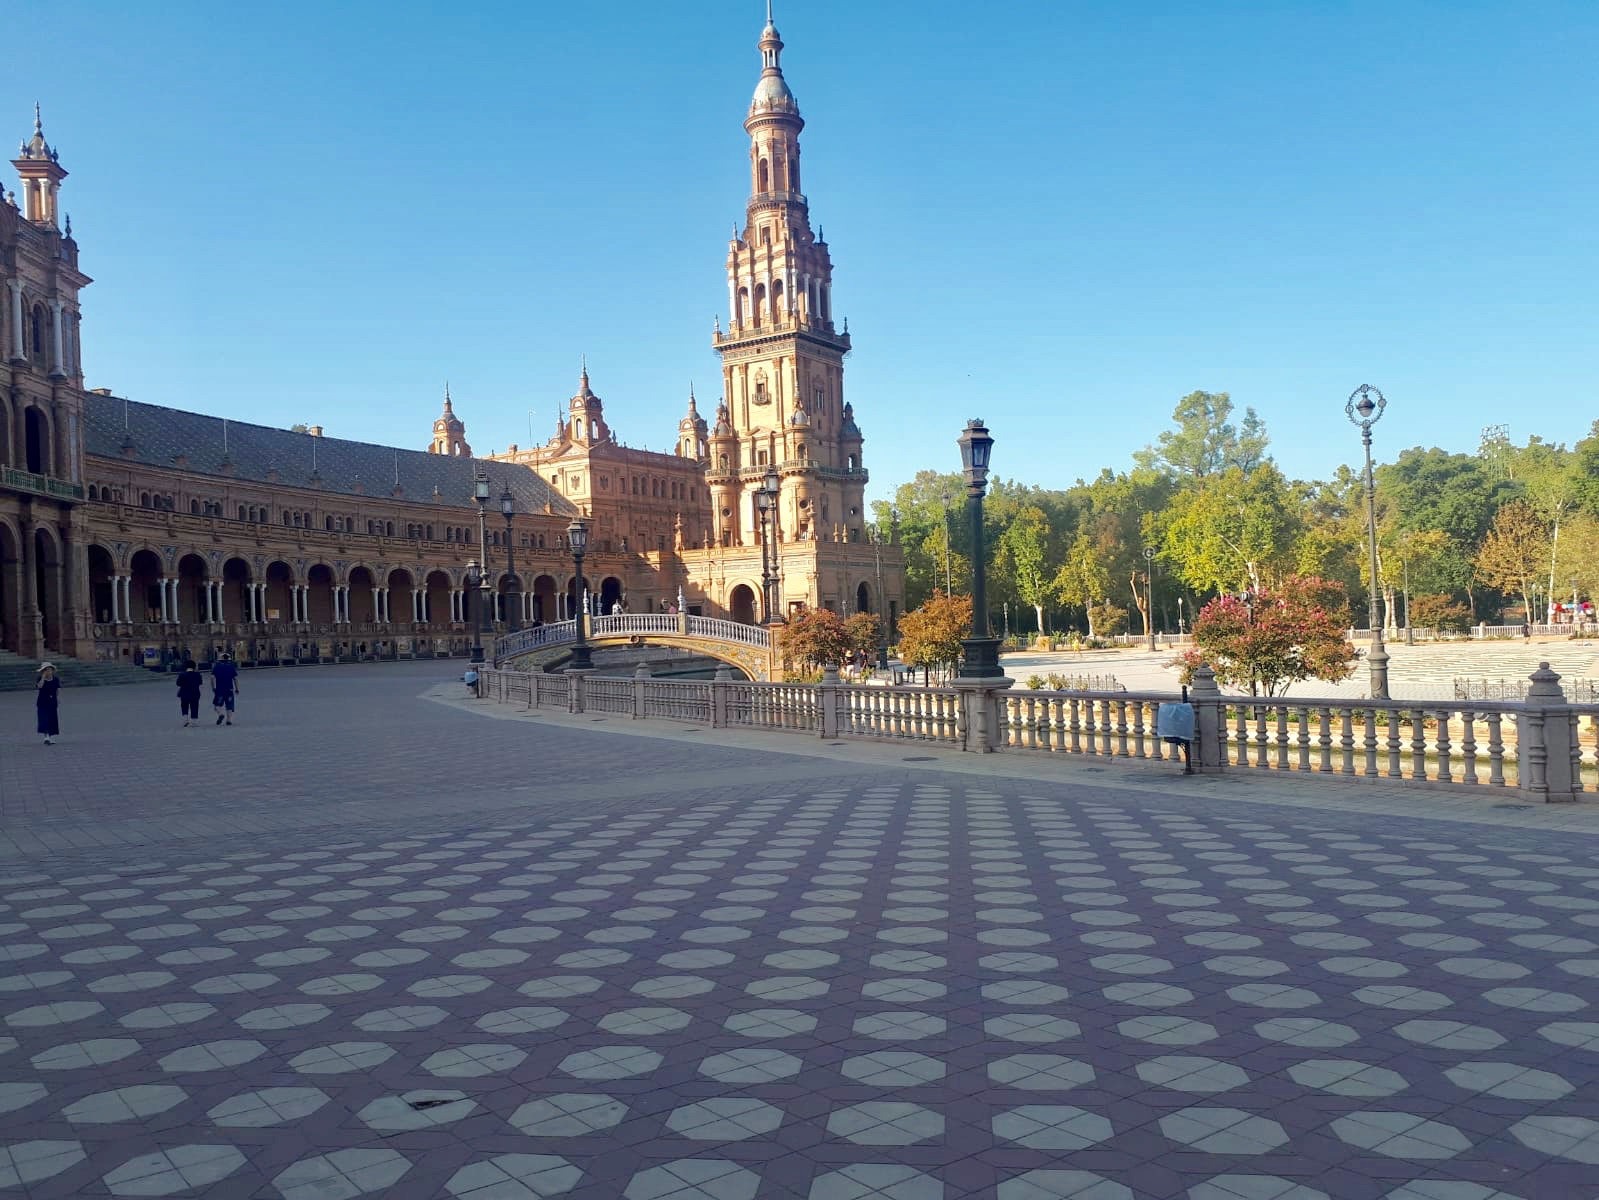 Plaza de espana from Sincerely Yours Susie blog blog. Photo credit Susie Cormack Bruce.jpg